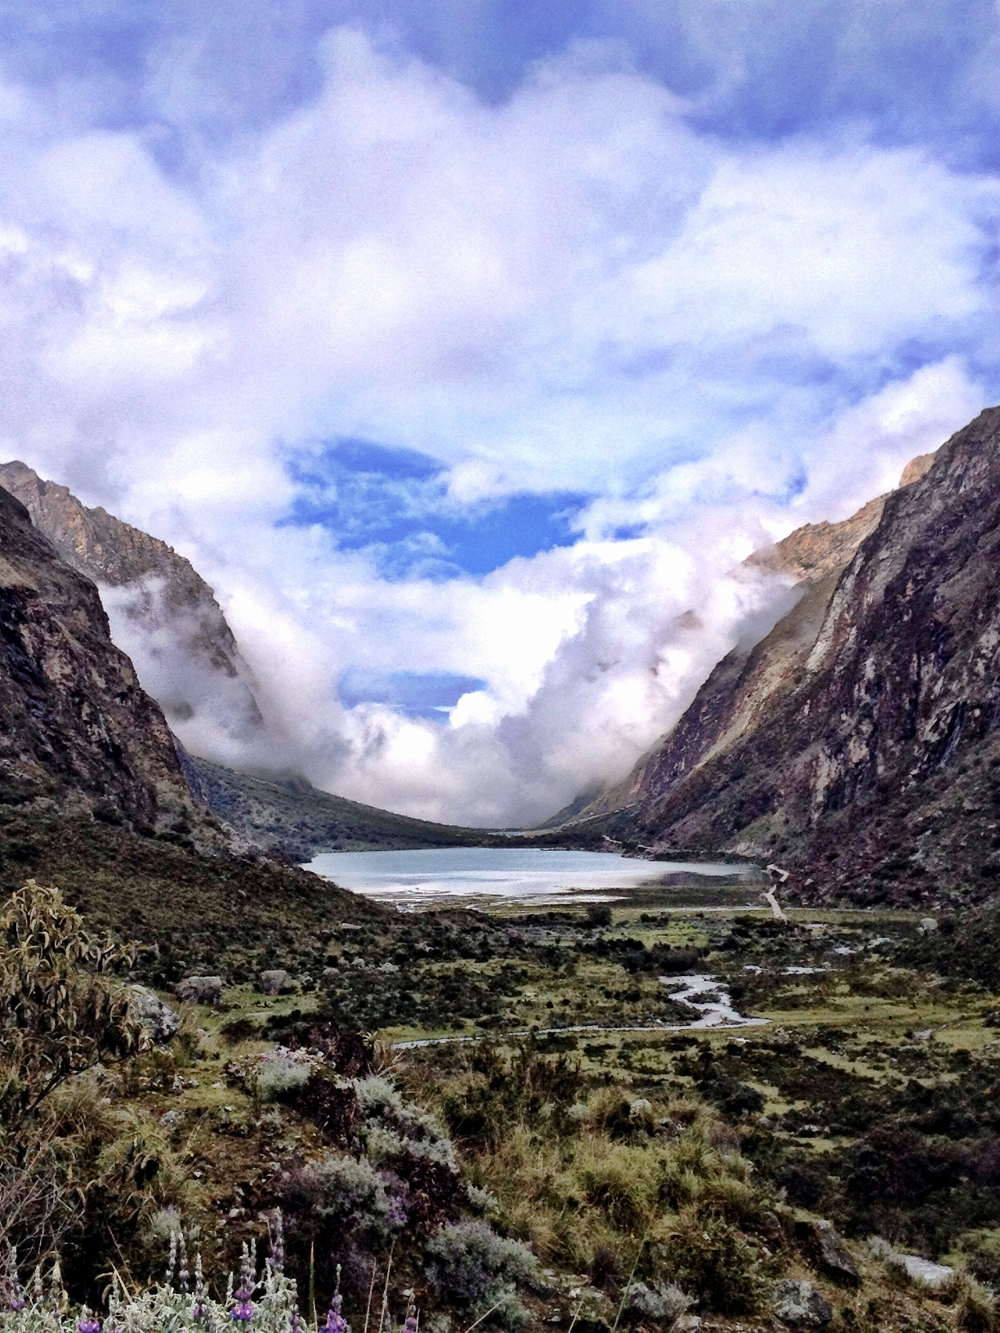 Beautiful hiking near Huaraz was a firm highlight during our travels in March